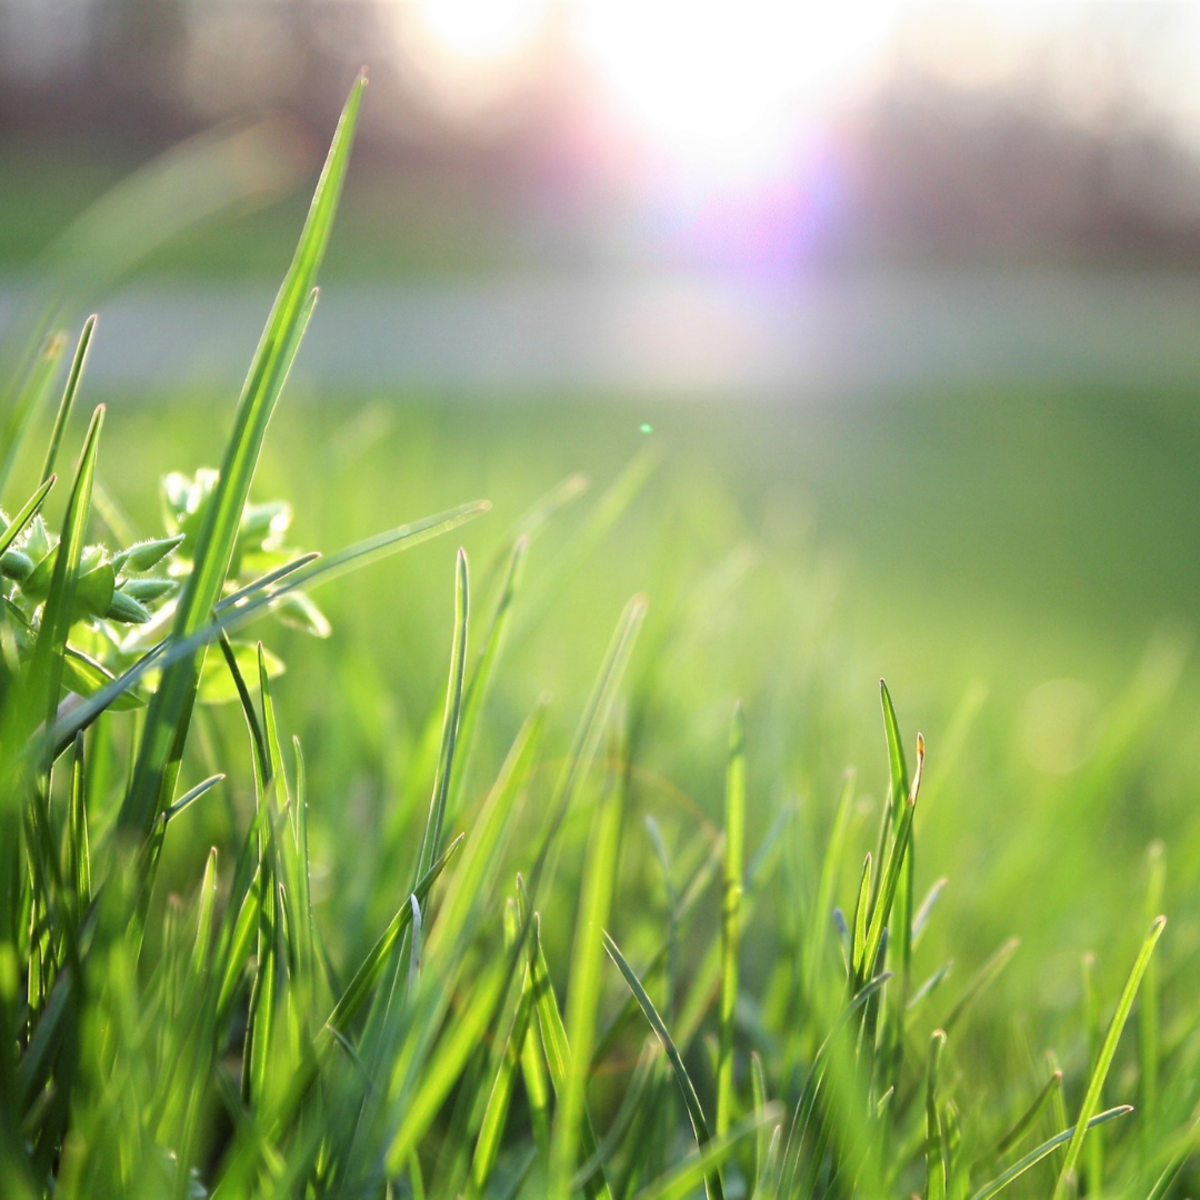 Dogs naturally eat grass to settle their stomachs.